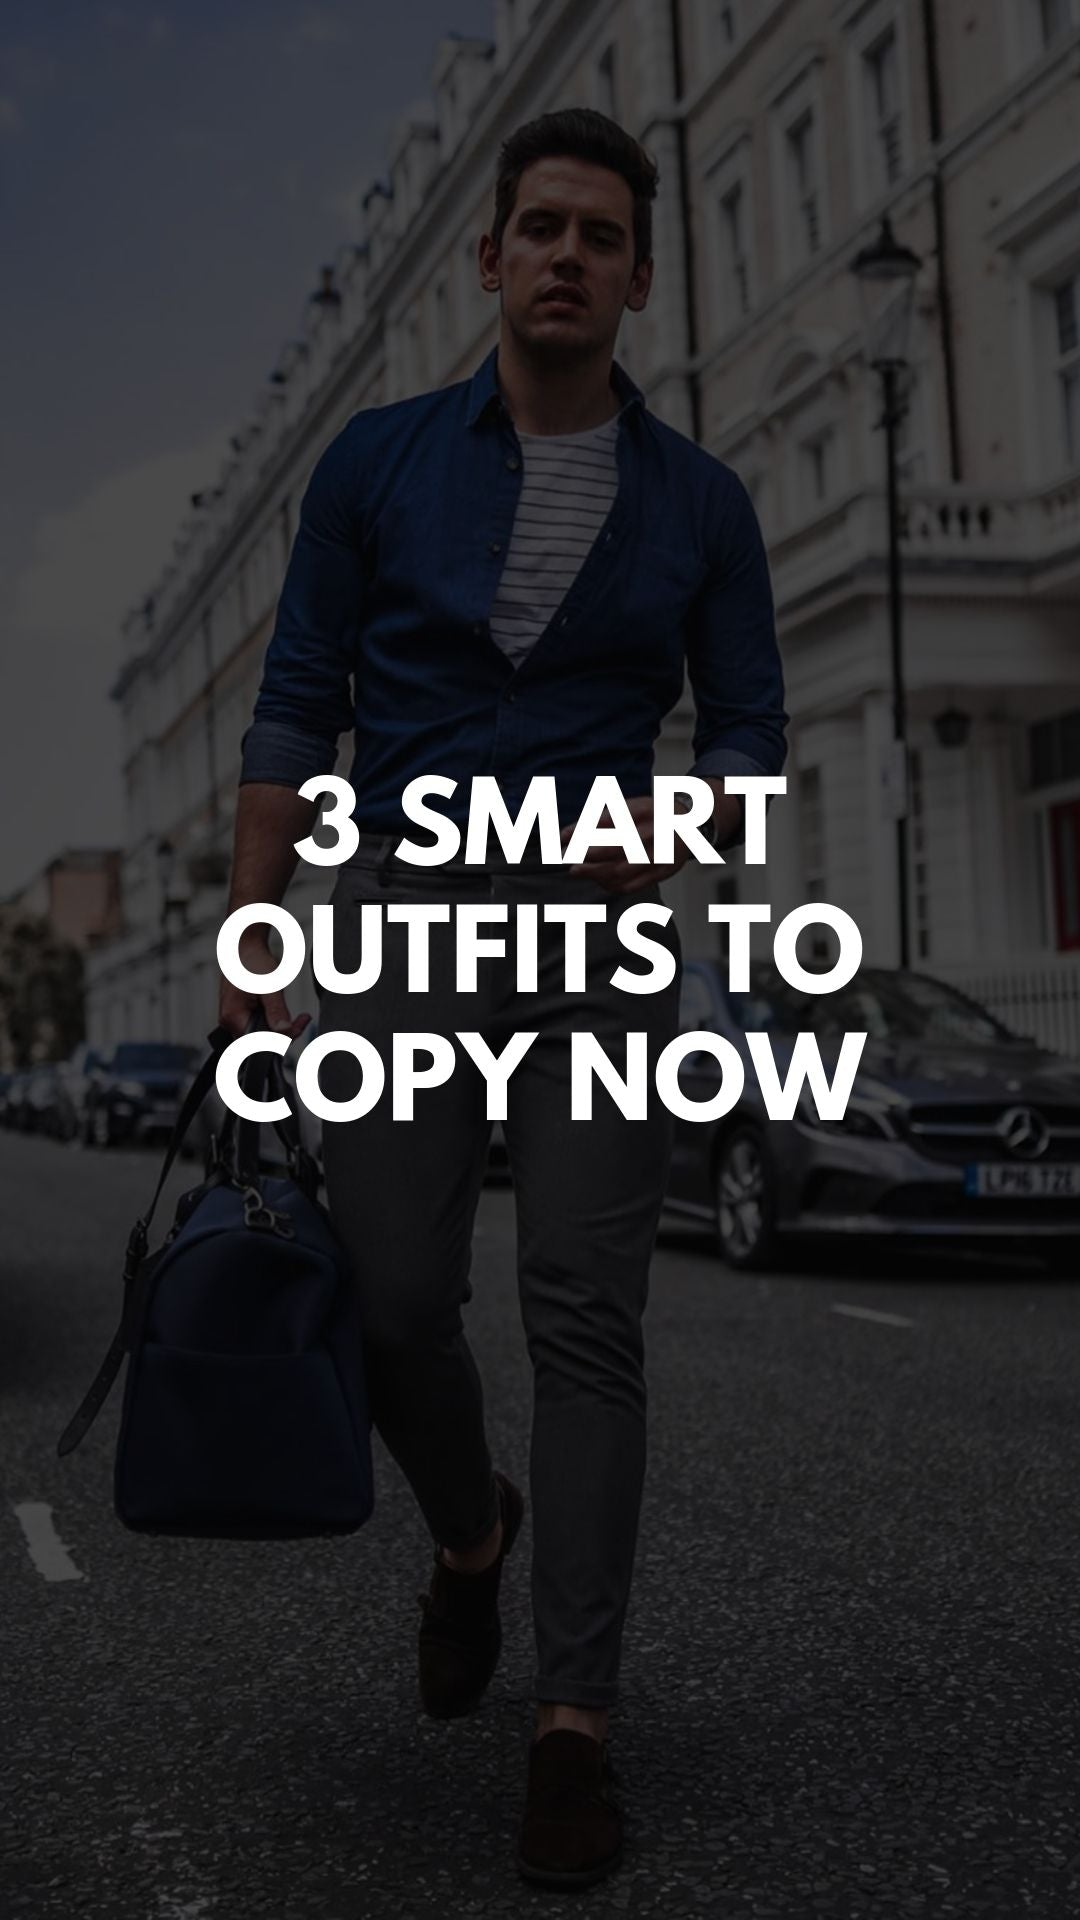 3 Smart Outfits To Copy Now